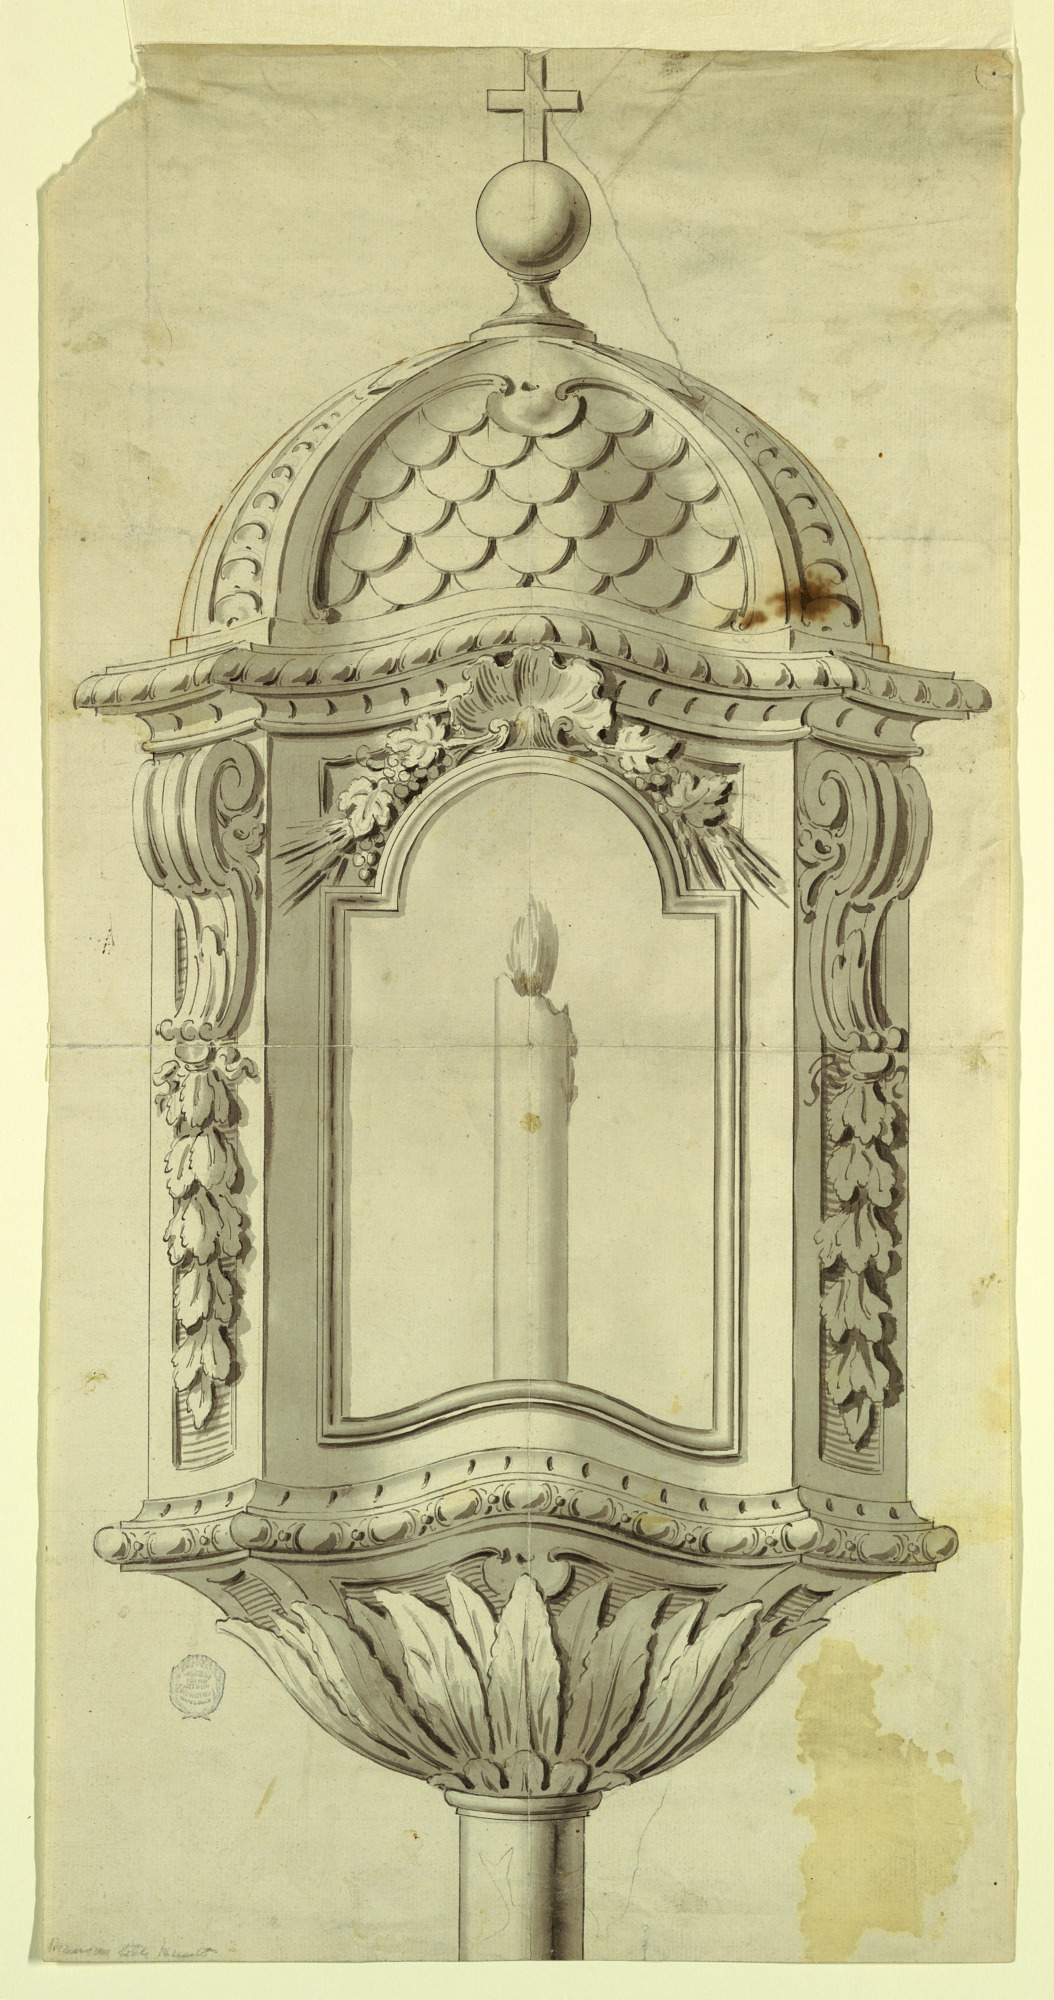 Elevation of a Processional Lantern